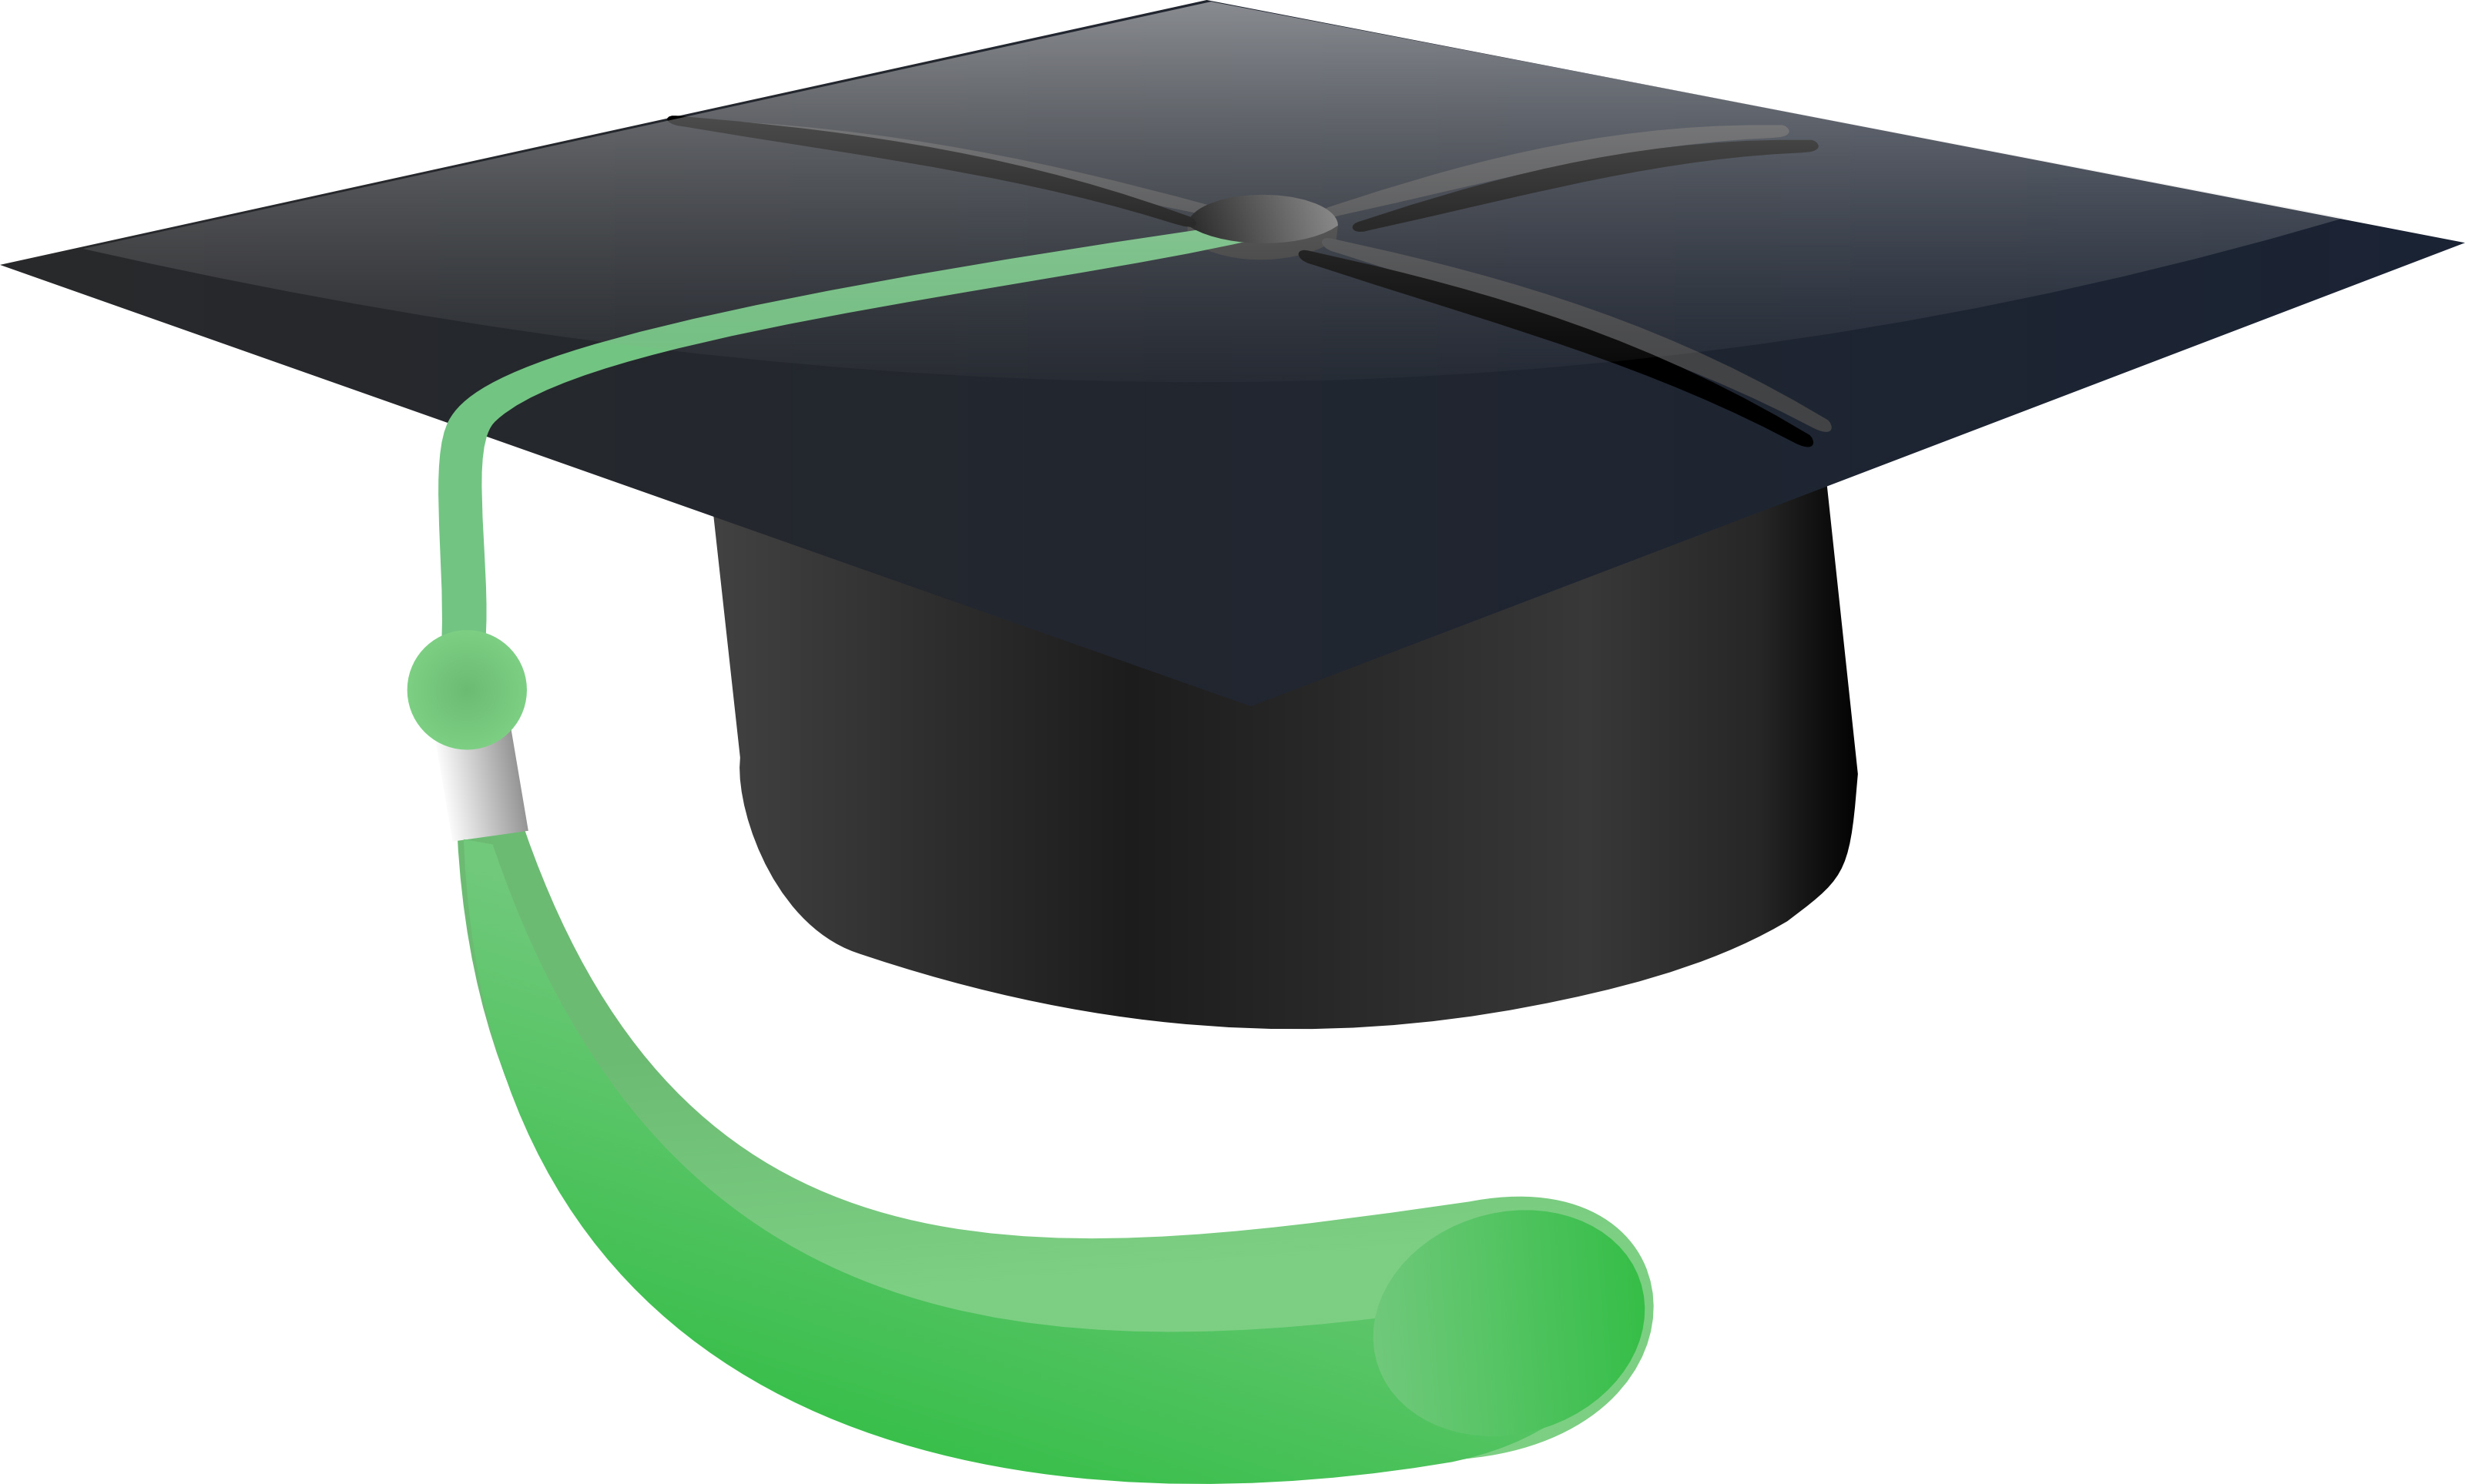 graduation images clip art 2012 free animated pictures clip art graduation hats red clip art graduation hat pattern